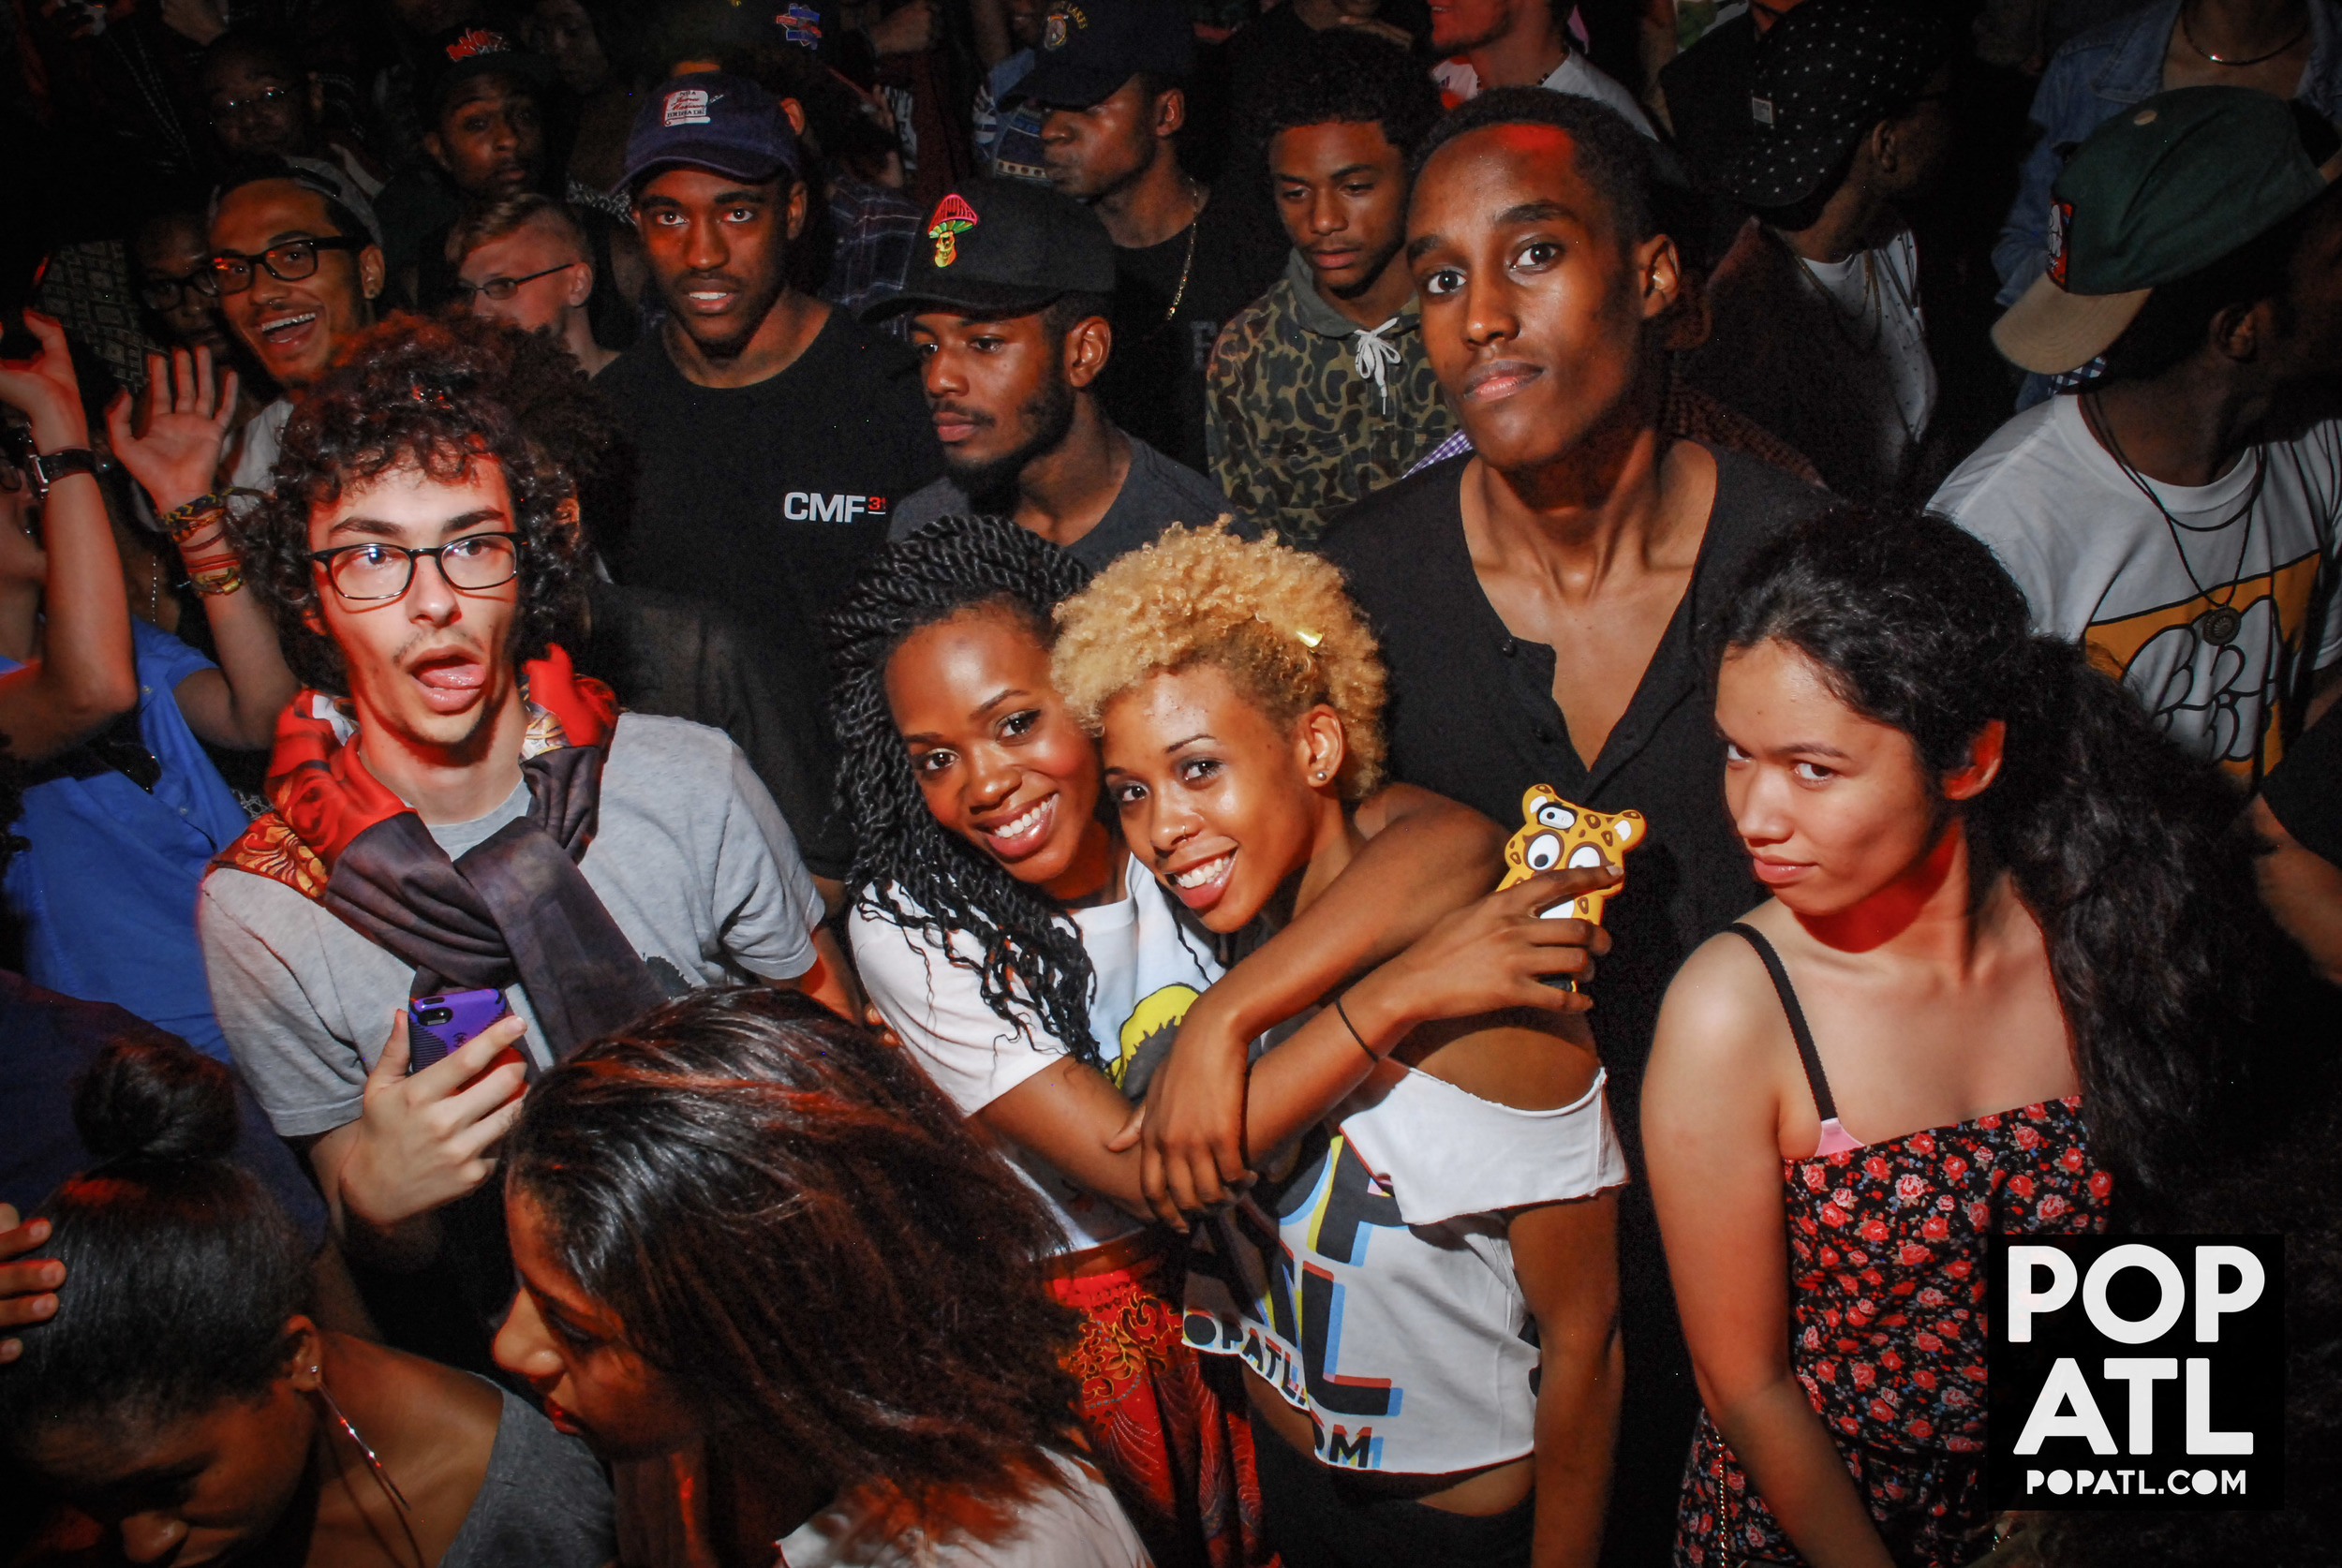 RAURY-RAURFEST-AT-POP-ATL-101.jpg